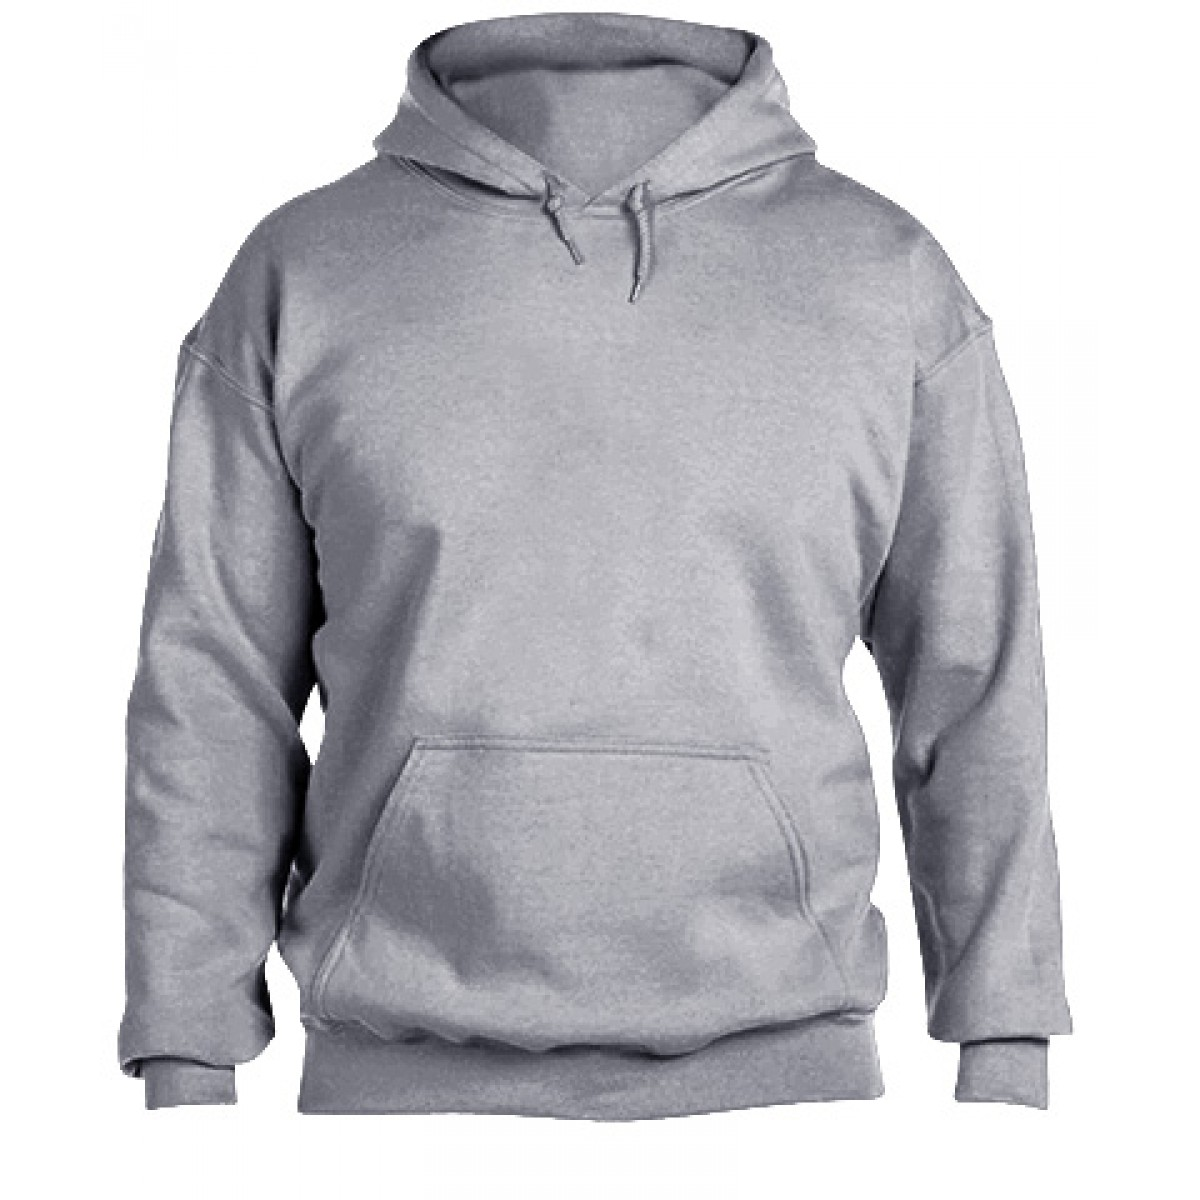 Hooded Sweatshirt 50/50 Heavy Blend-Sports Grey-YL